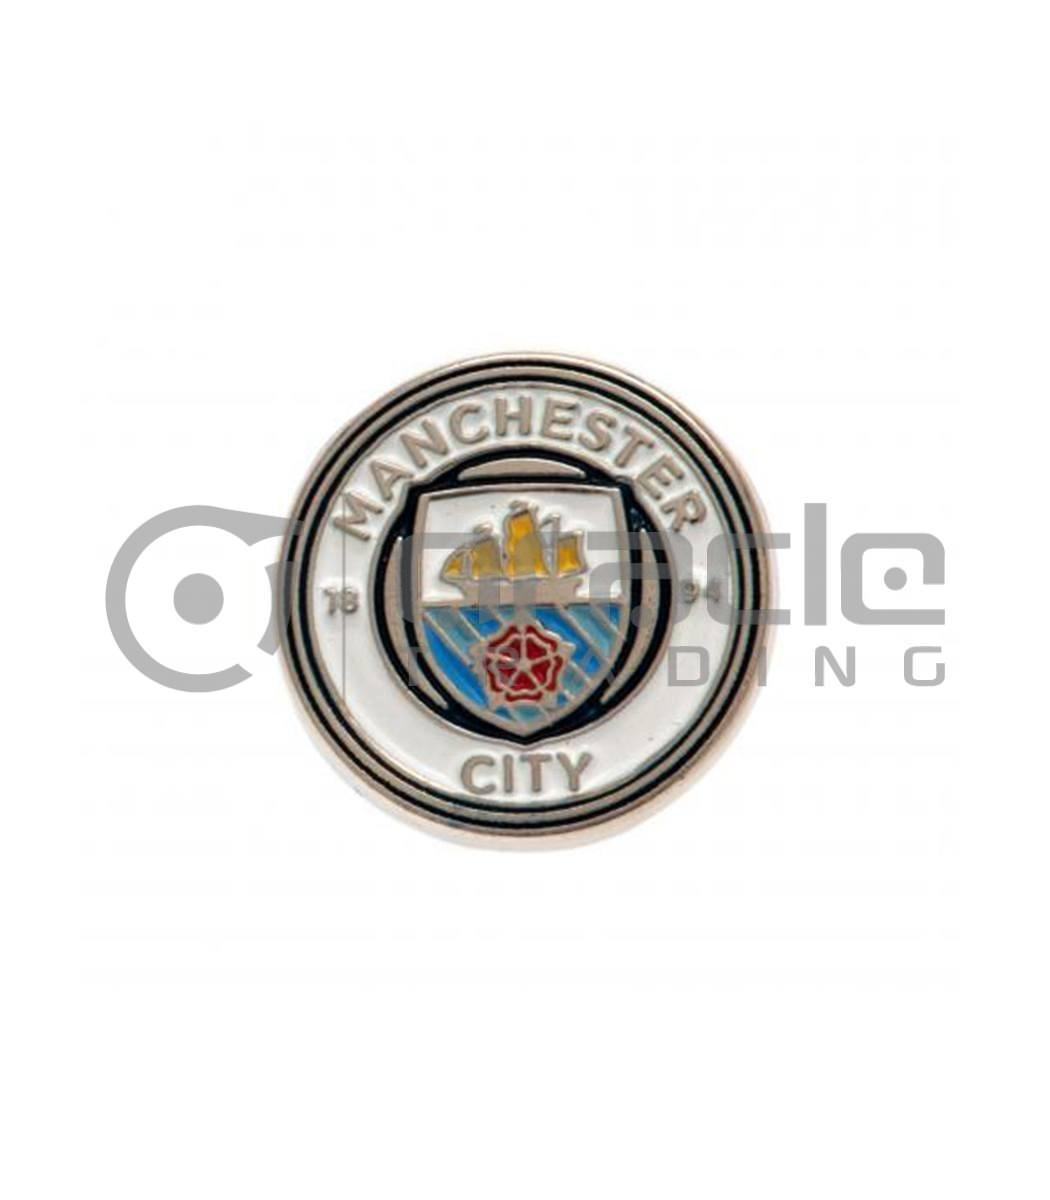 Manchester City Crest Pin